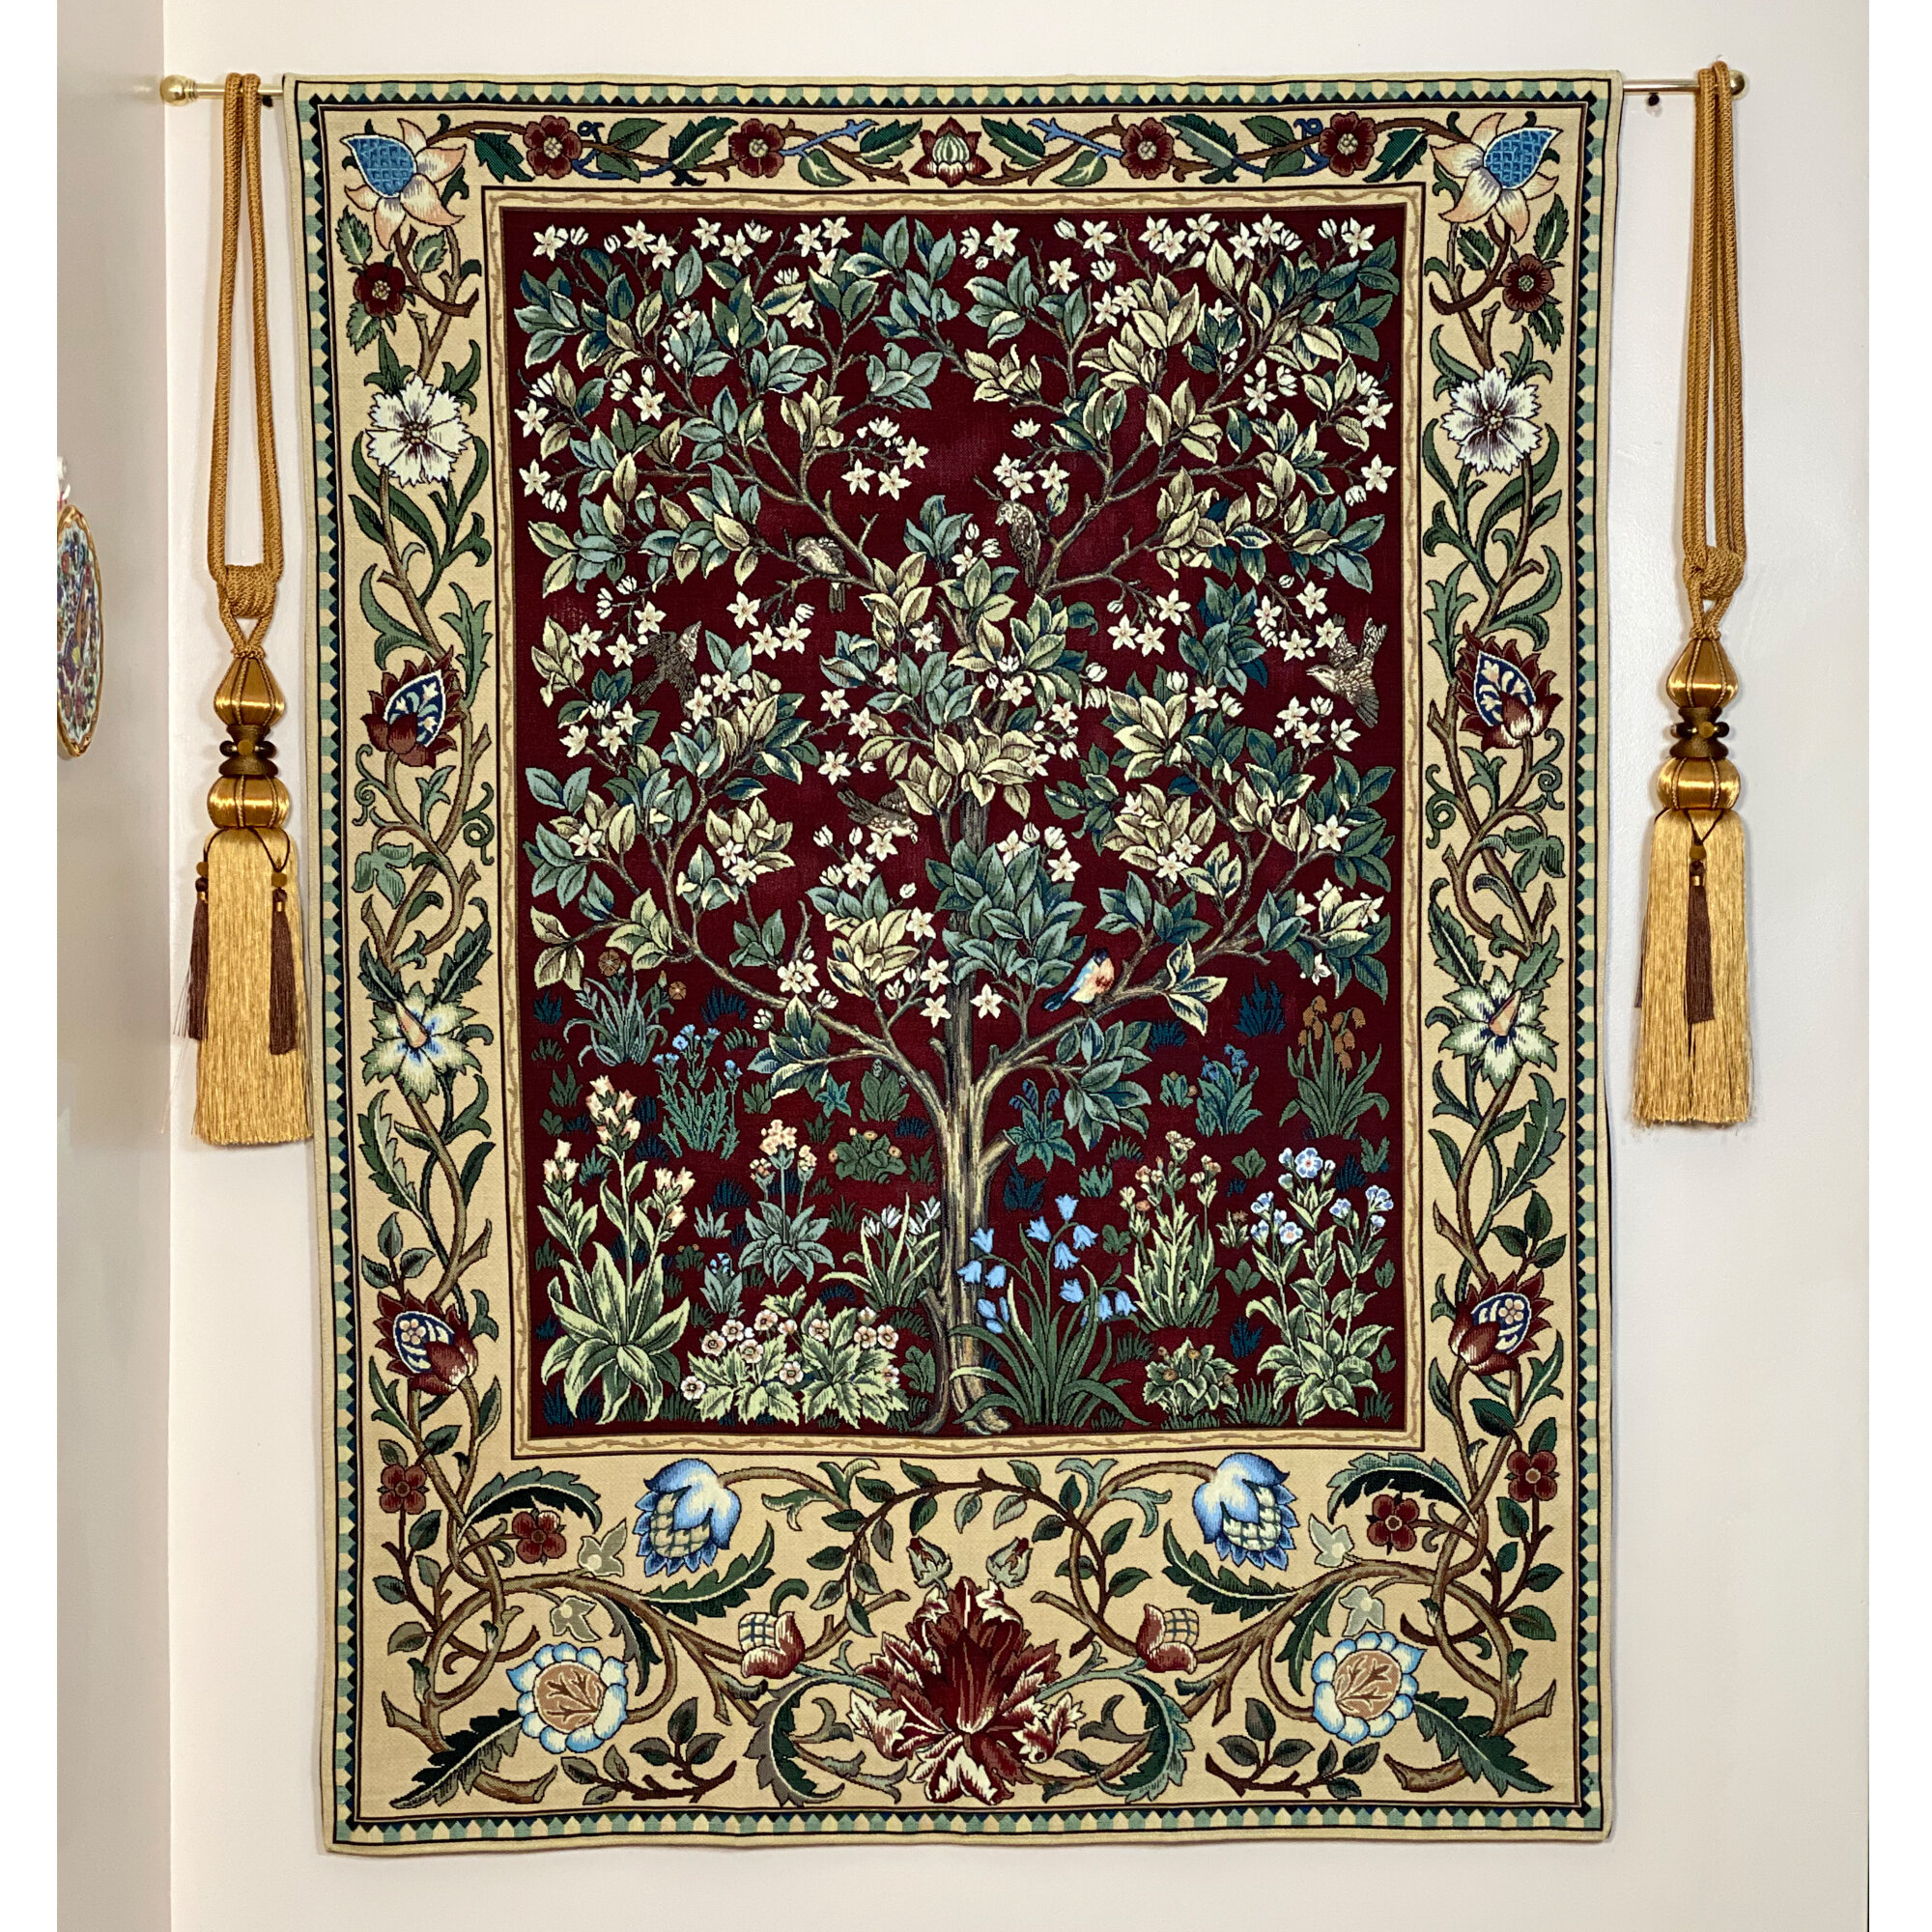 Cotton William Morris Tree Of Life Wall Hanging Regarding 2017 Blended Fabric Mucha Autumn European Wall Hangings (View 6 of 20)